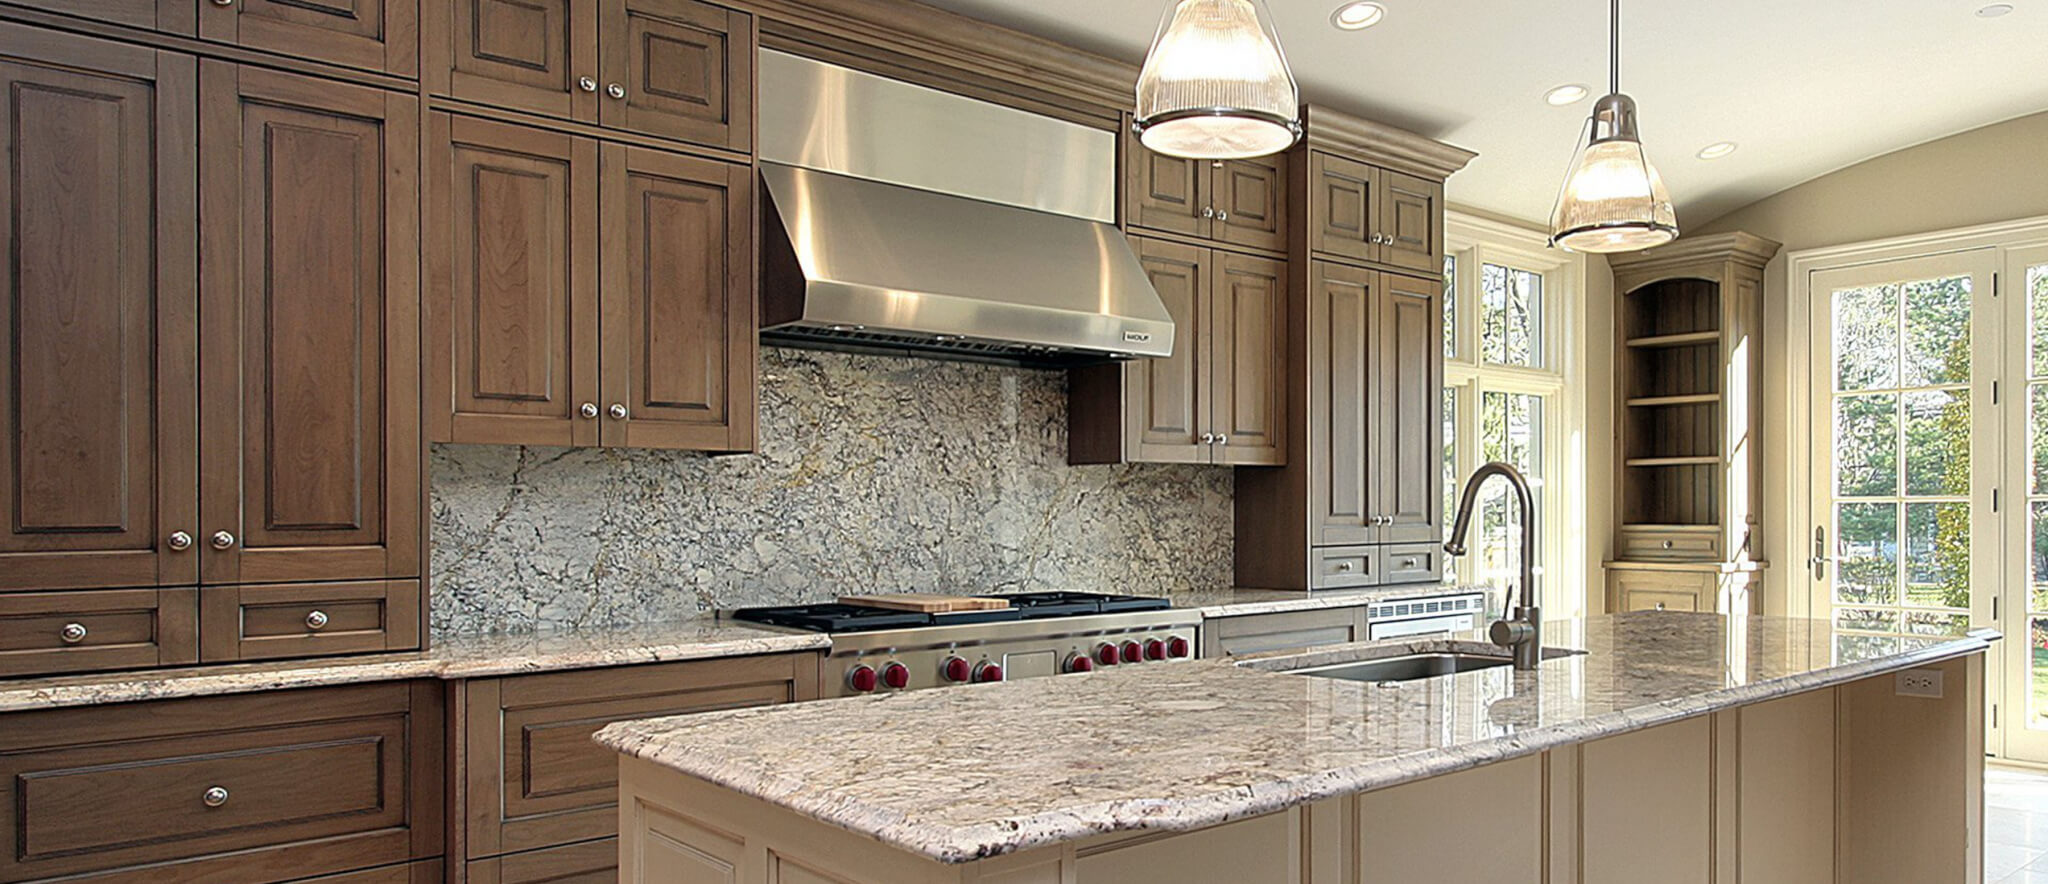 Gallery - Superior Granite | Natural Stone & Quartz Supplier ...